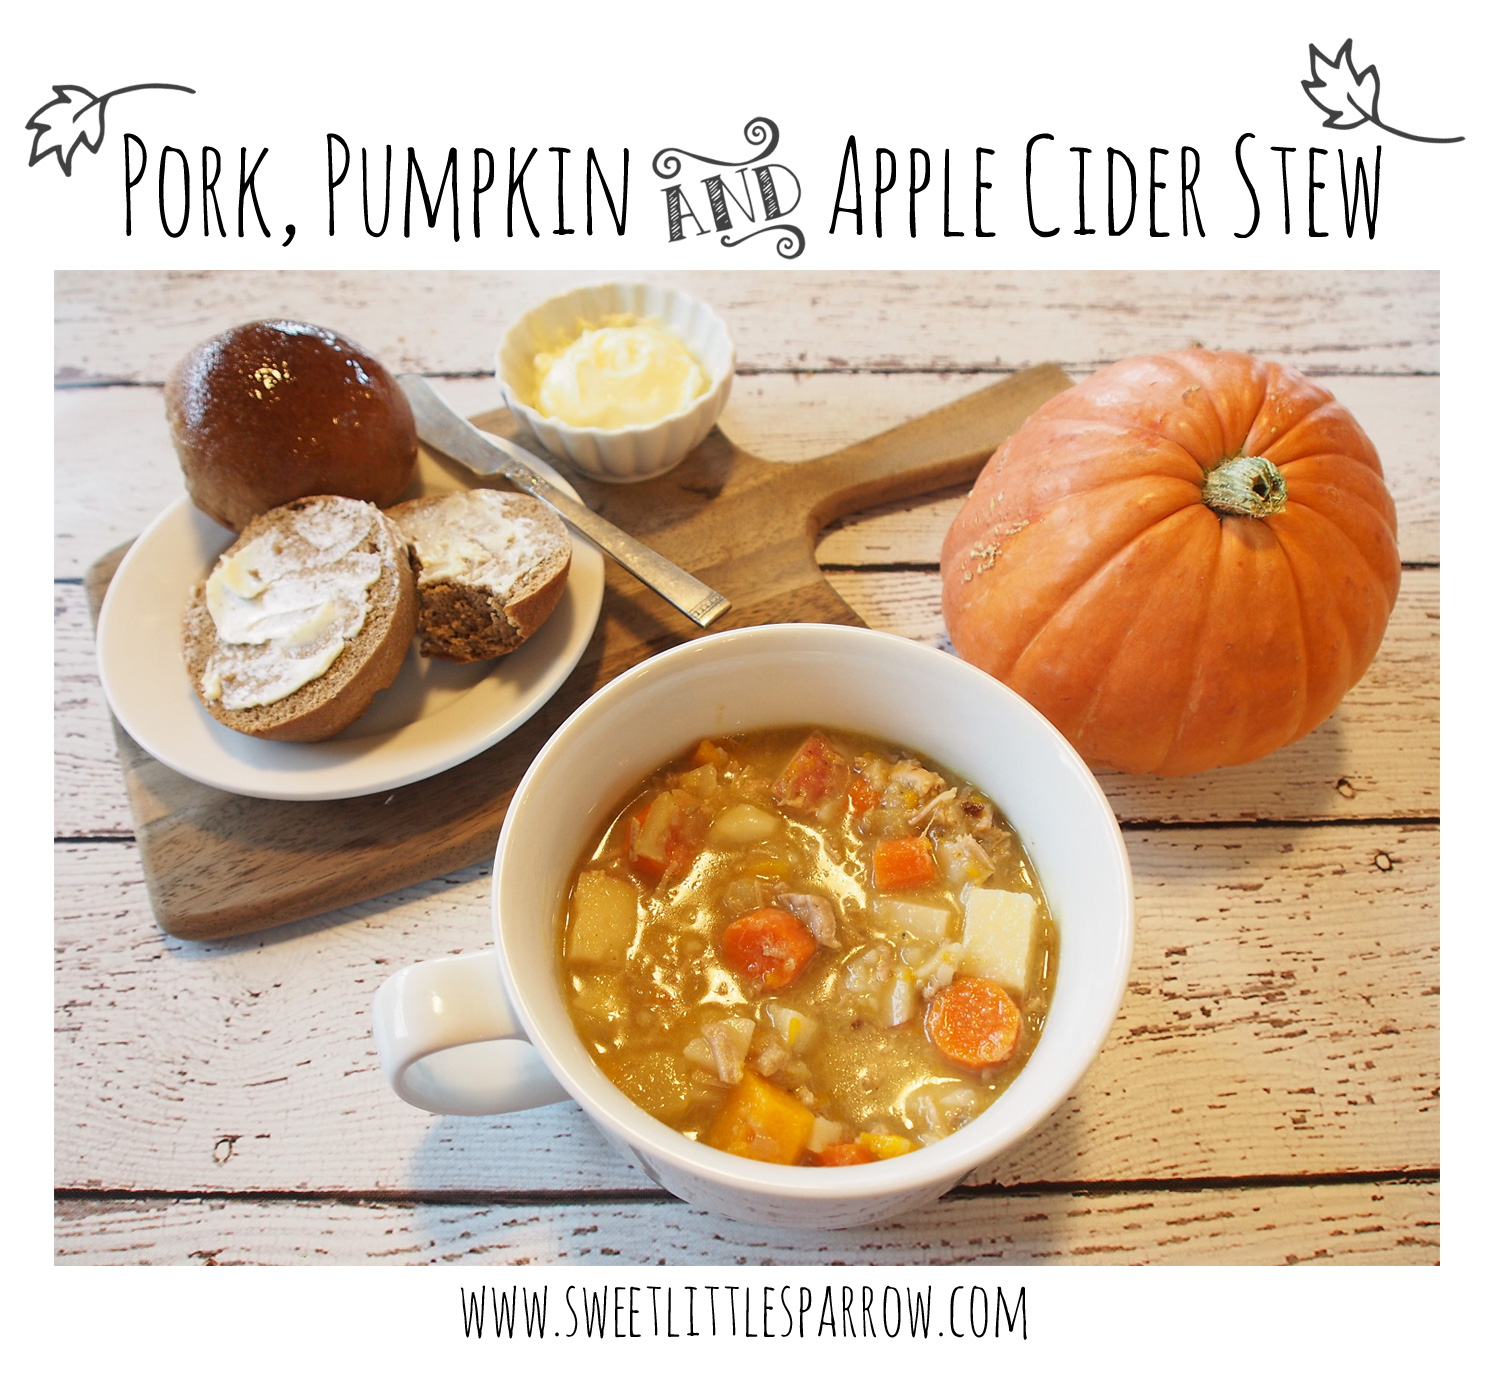 Recipe} Pork, Pumpkin & Apple Cider Stew